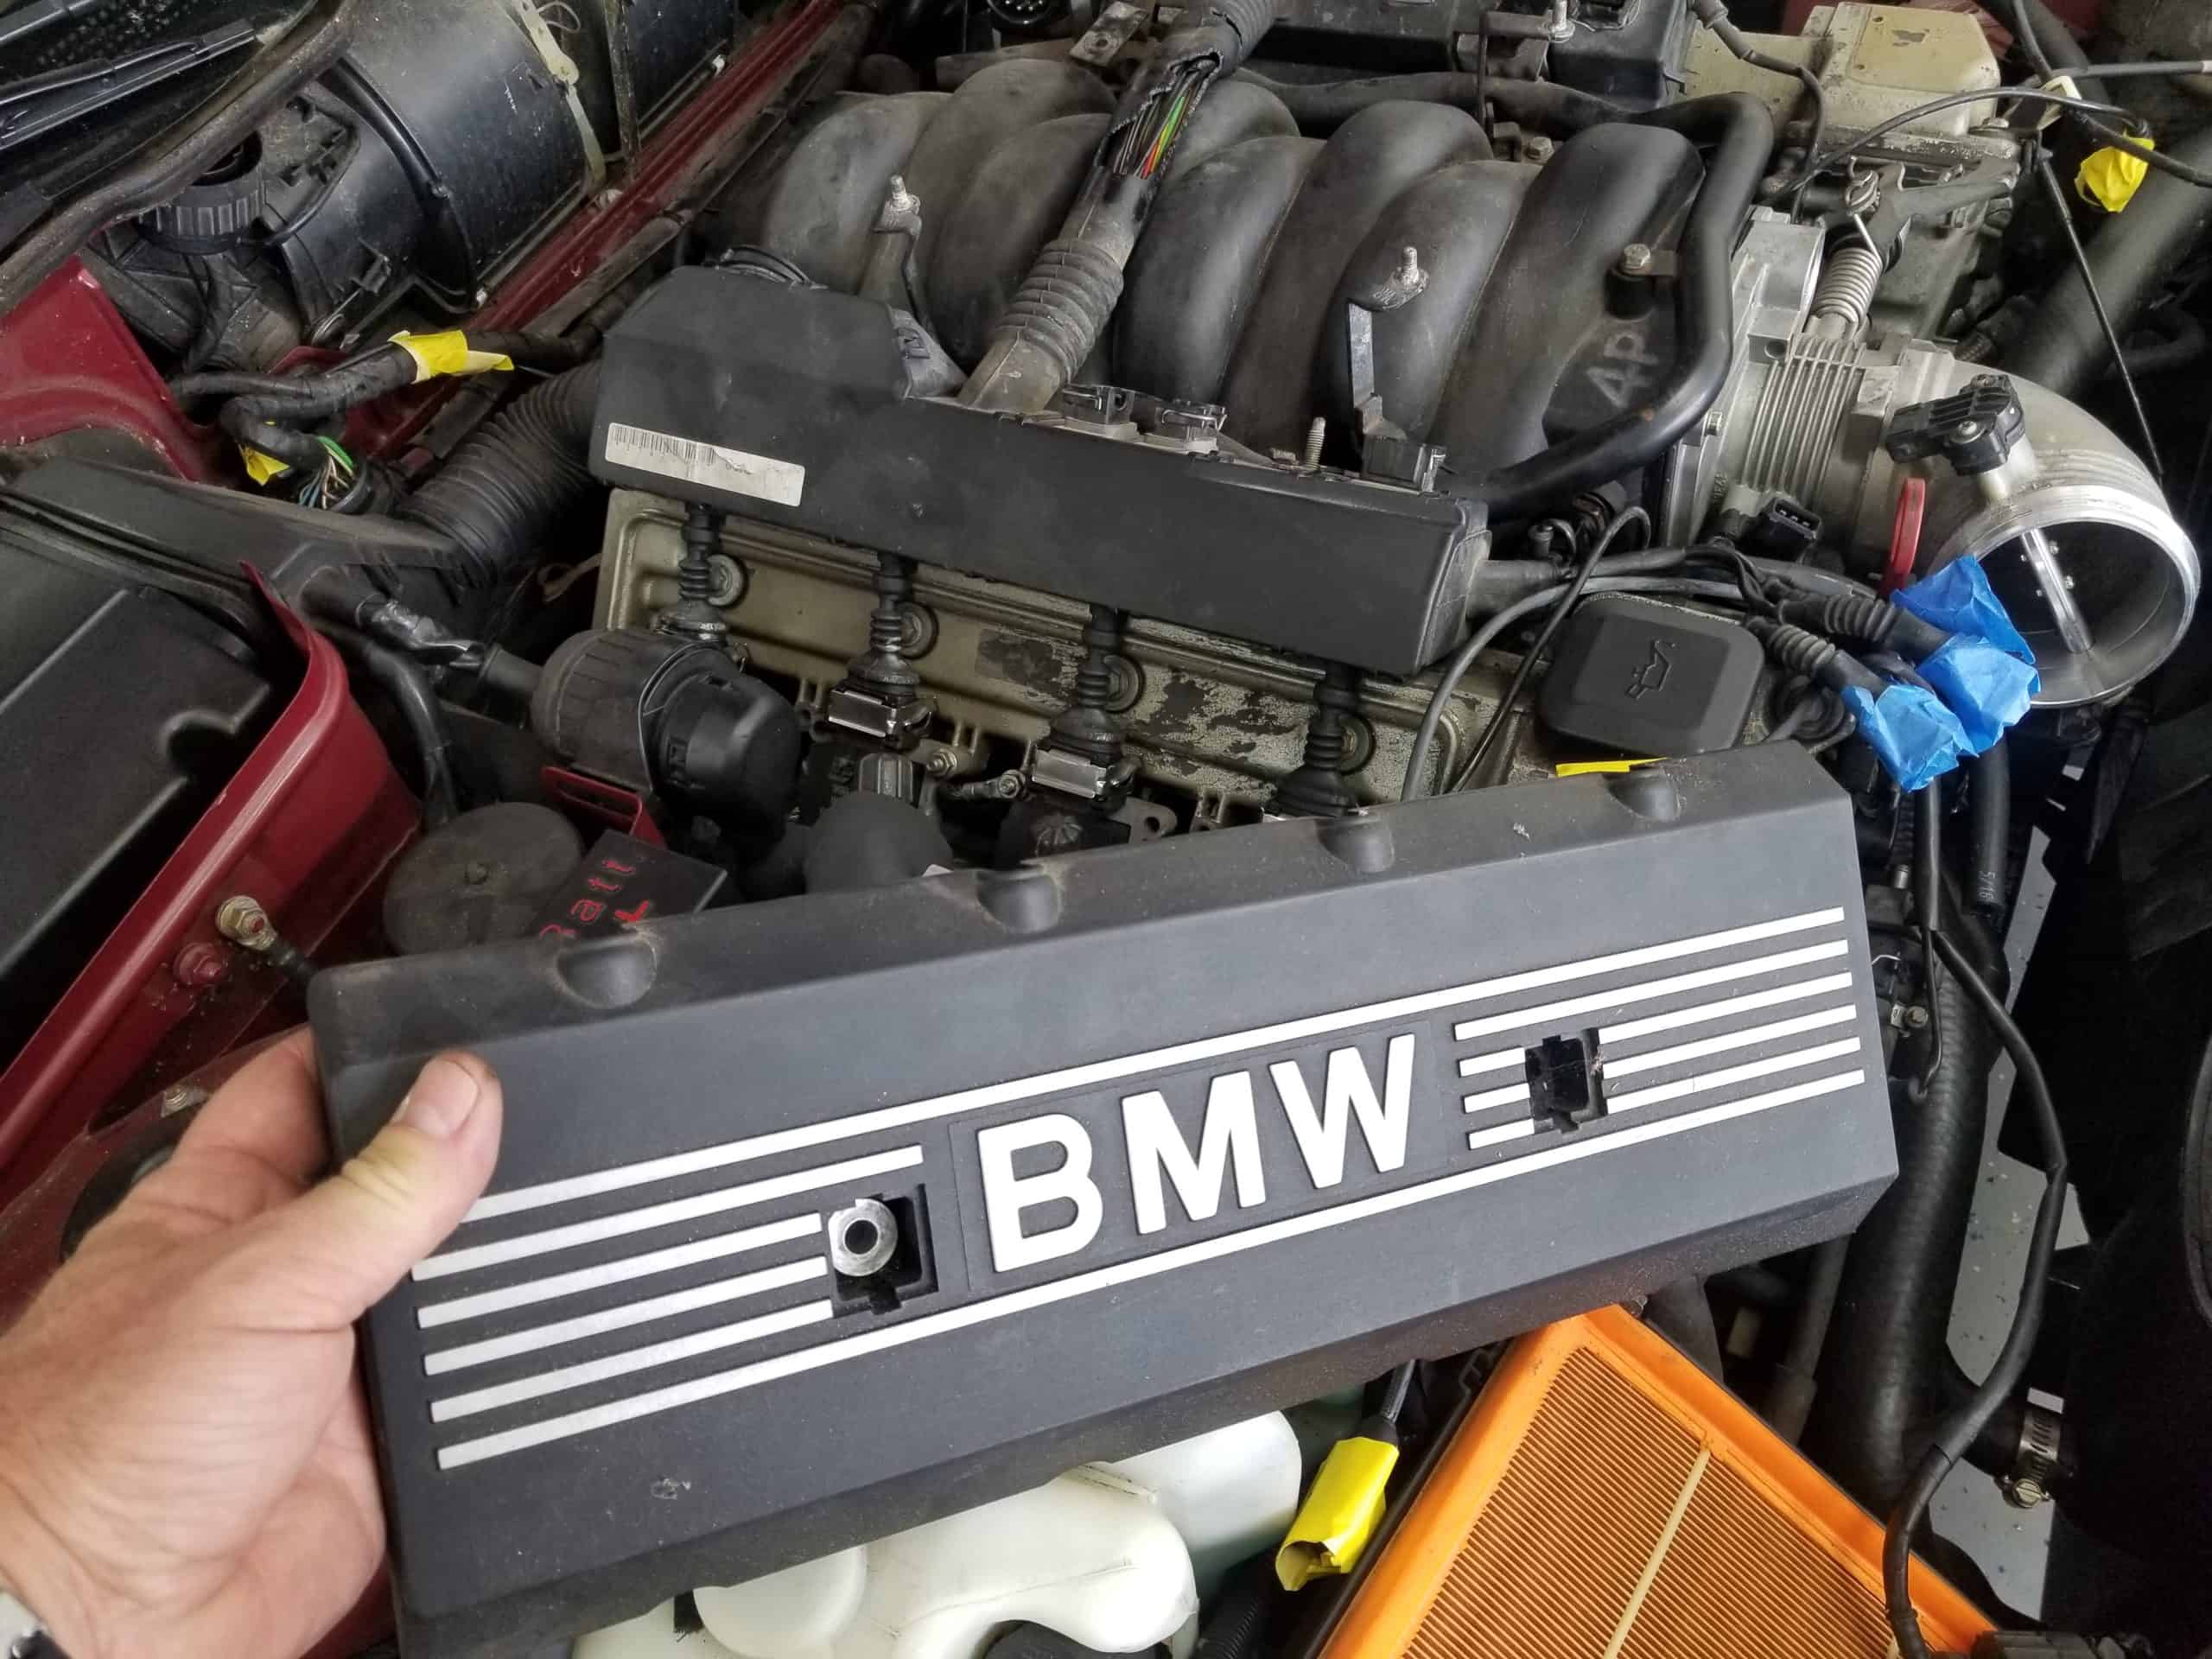 bmw m60 intake manifold gasket replacement - Remove the side engine covers